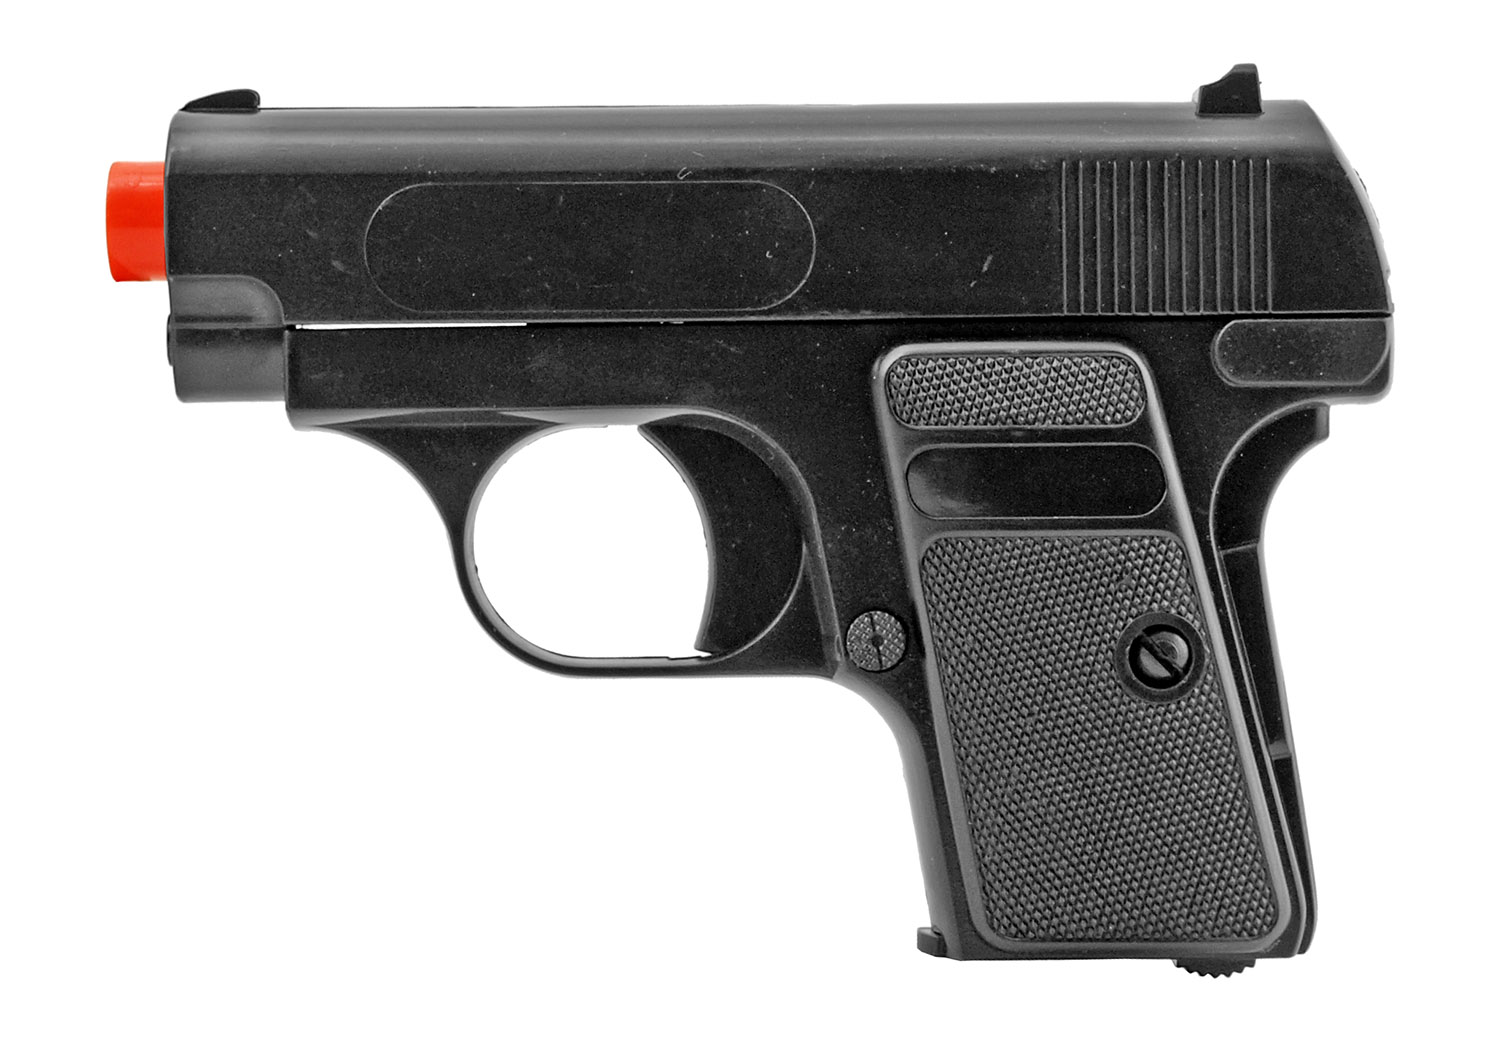 G.1 Style Replica Air Sport Spring Powered Airsoft Pistol Sidearm - Double Eagle